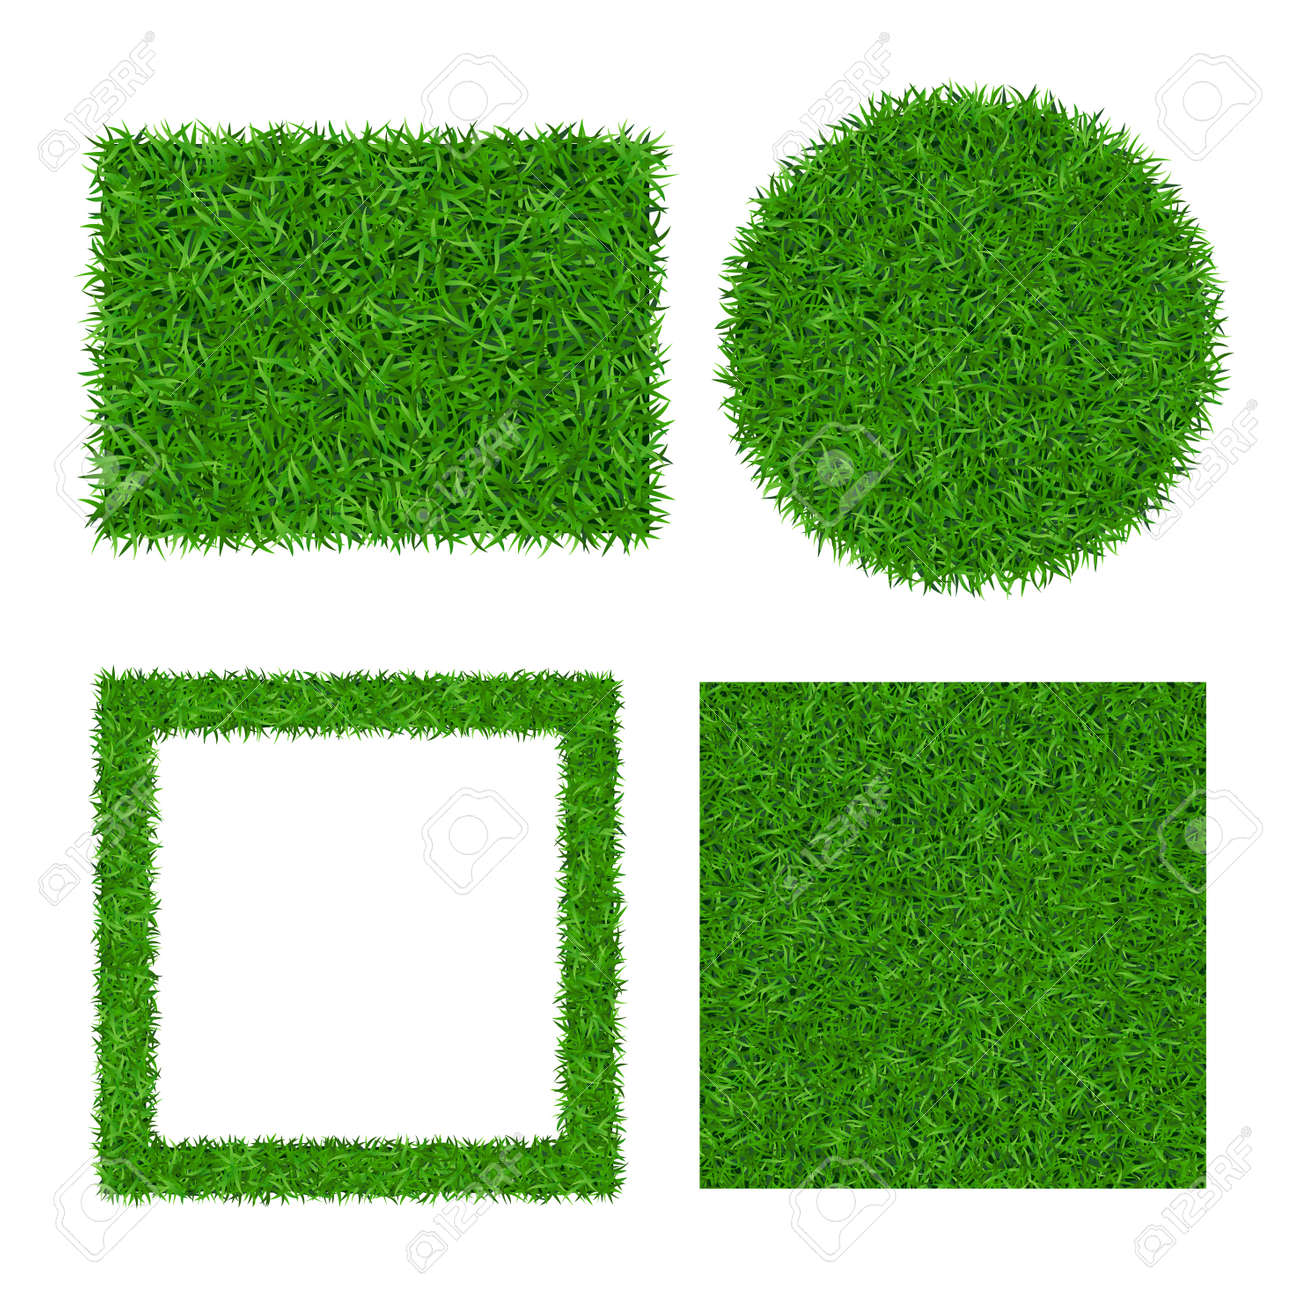 Green grass background isolated 3D set. Lawn greenery nature ball. Soccer field texture circle, square frame, rectangle. Ground grassland pattern. Grassy design. Grow meadow Vector illustration - 141102663